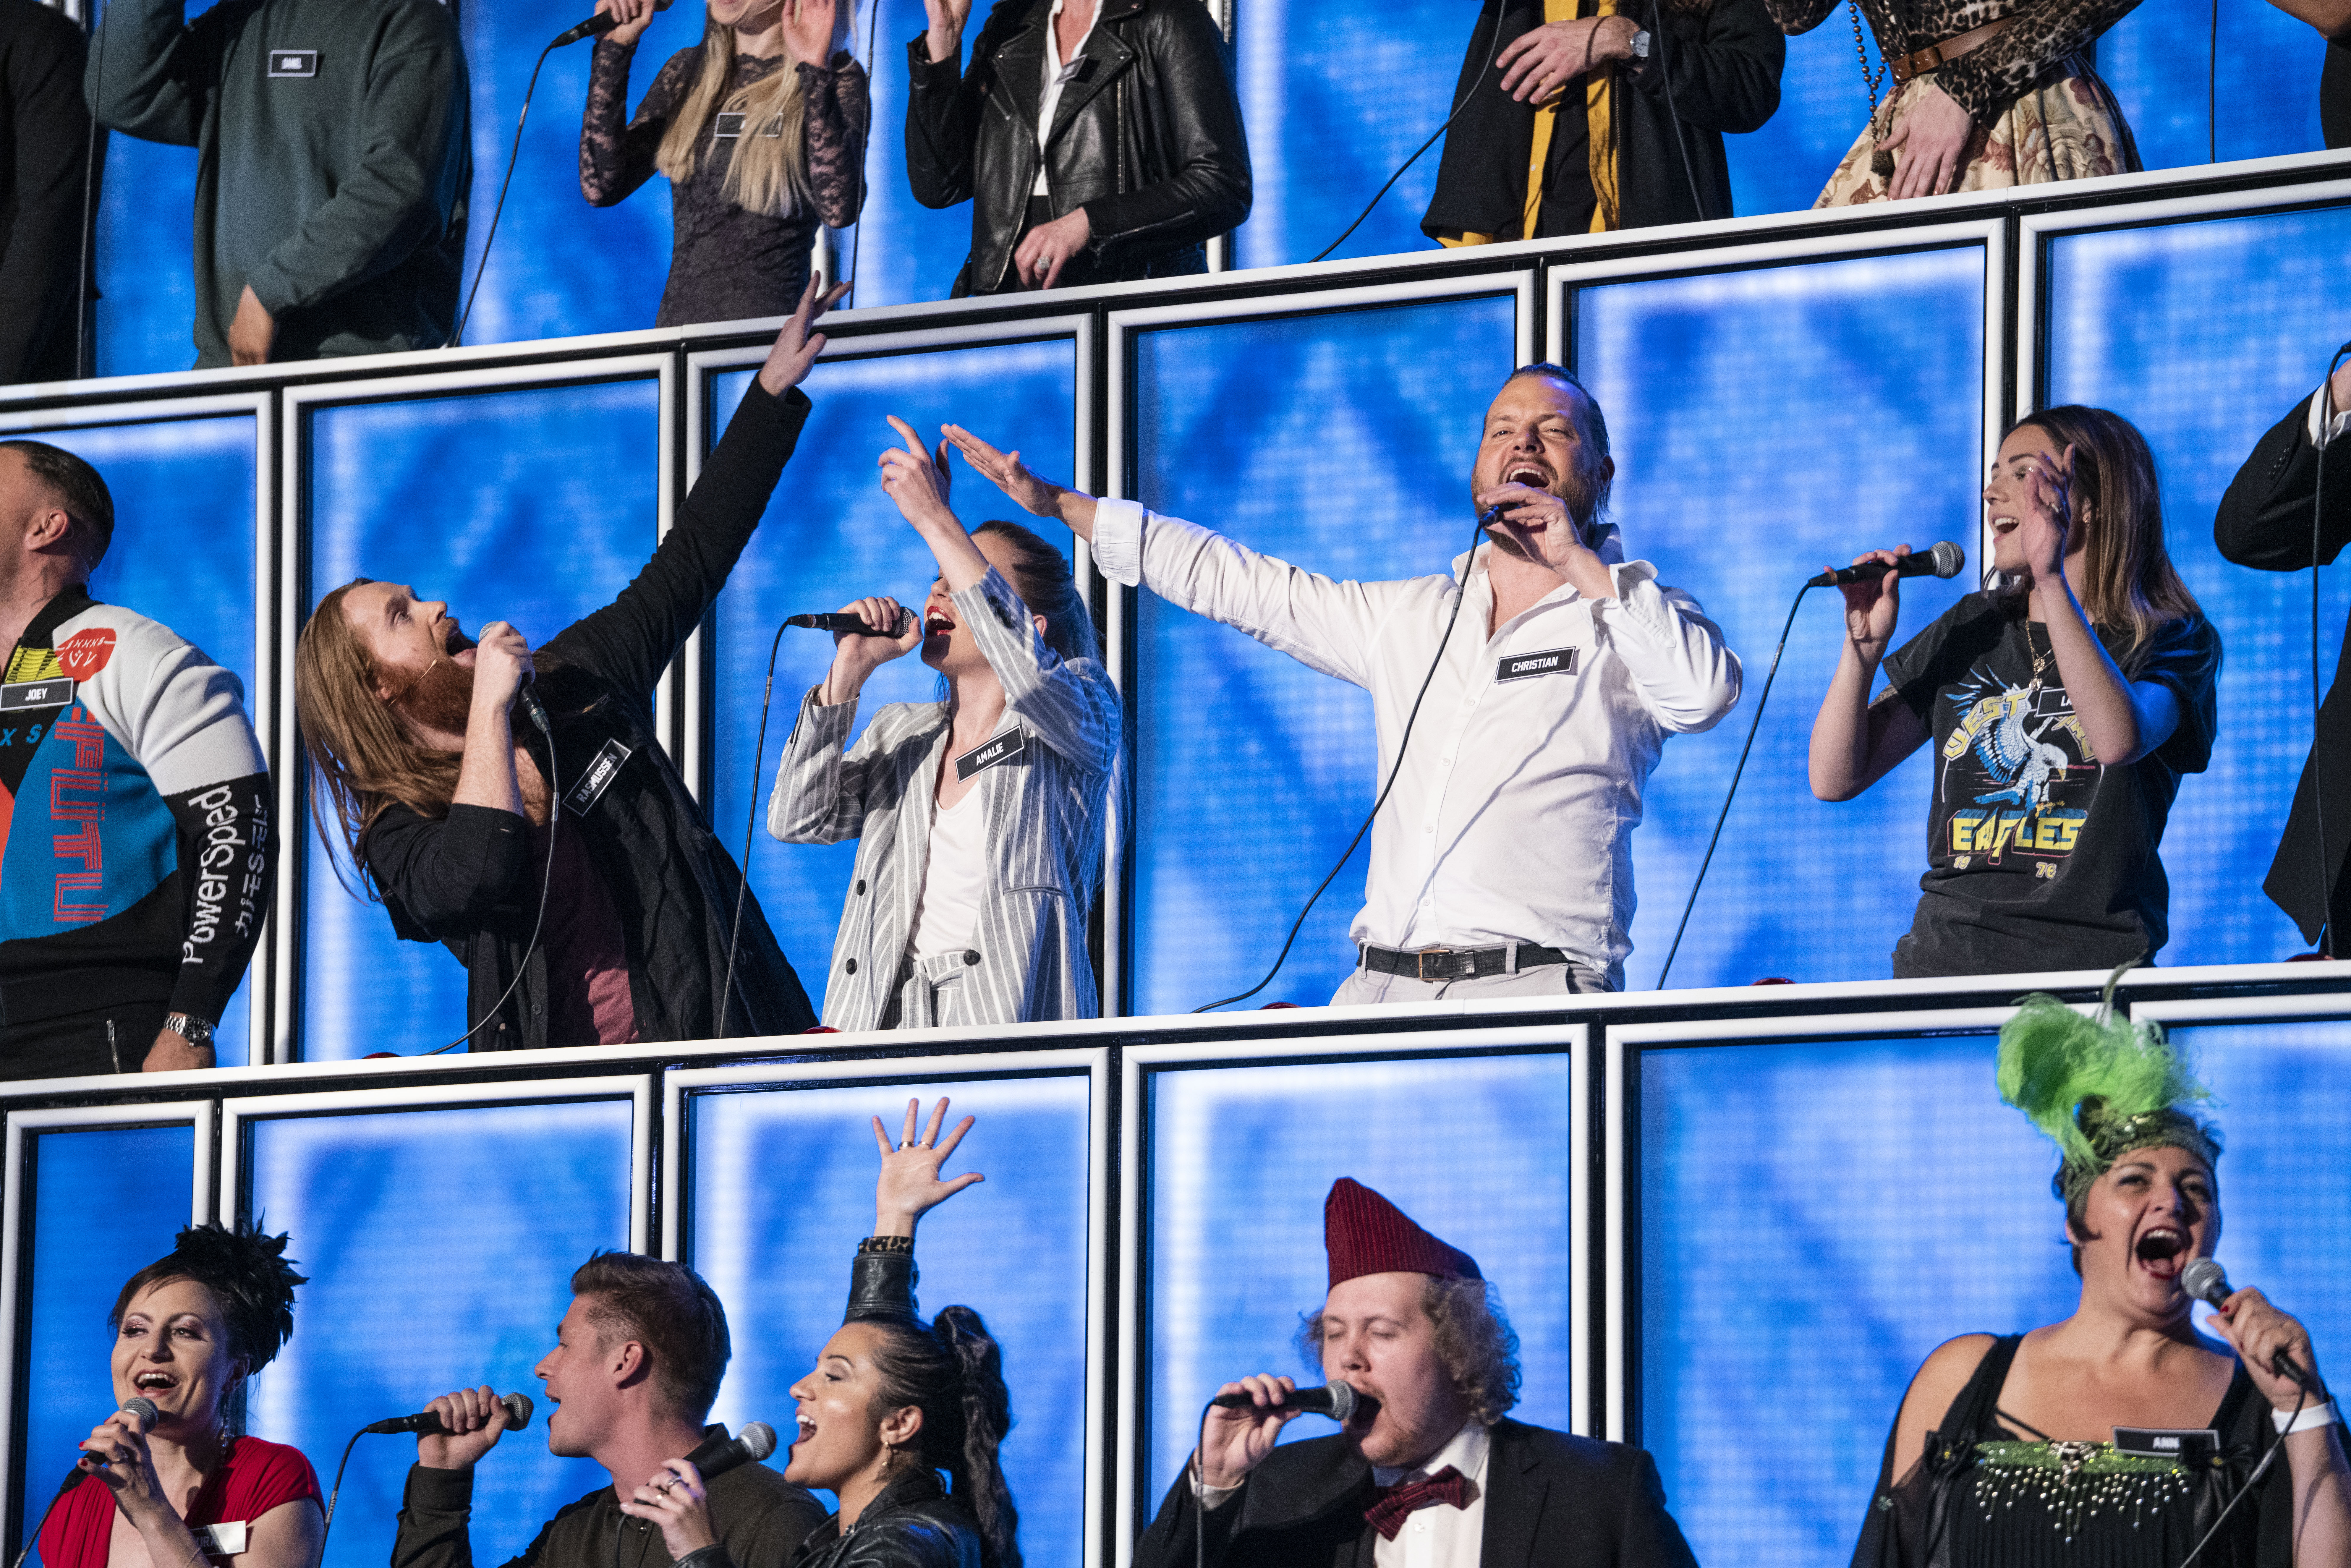 All Together Now – Danmark